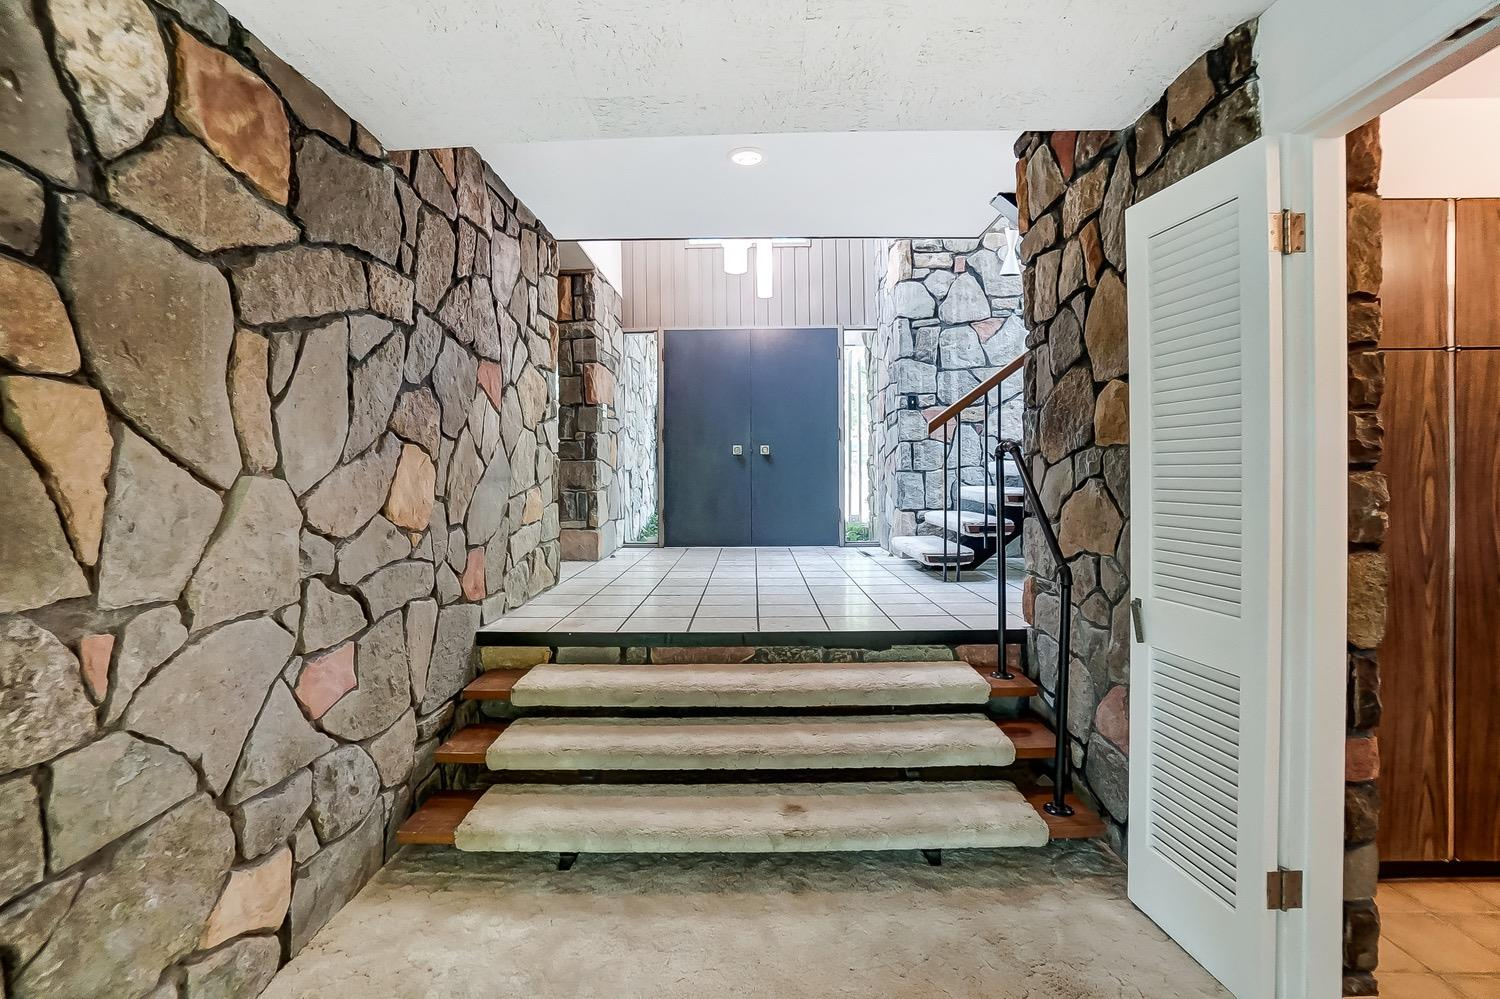 The entry hall follows the stone walls to step in the open living, family, and dining areas. The doorway to the right accesses the kitchen.